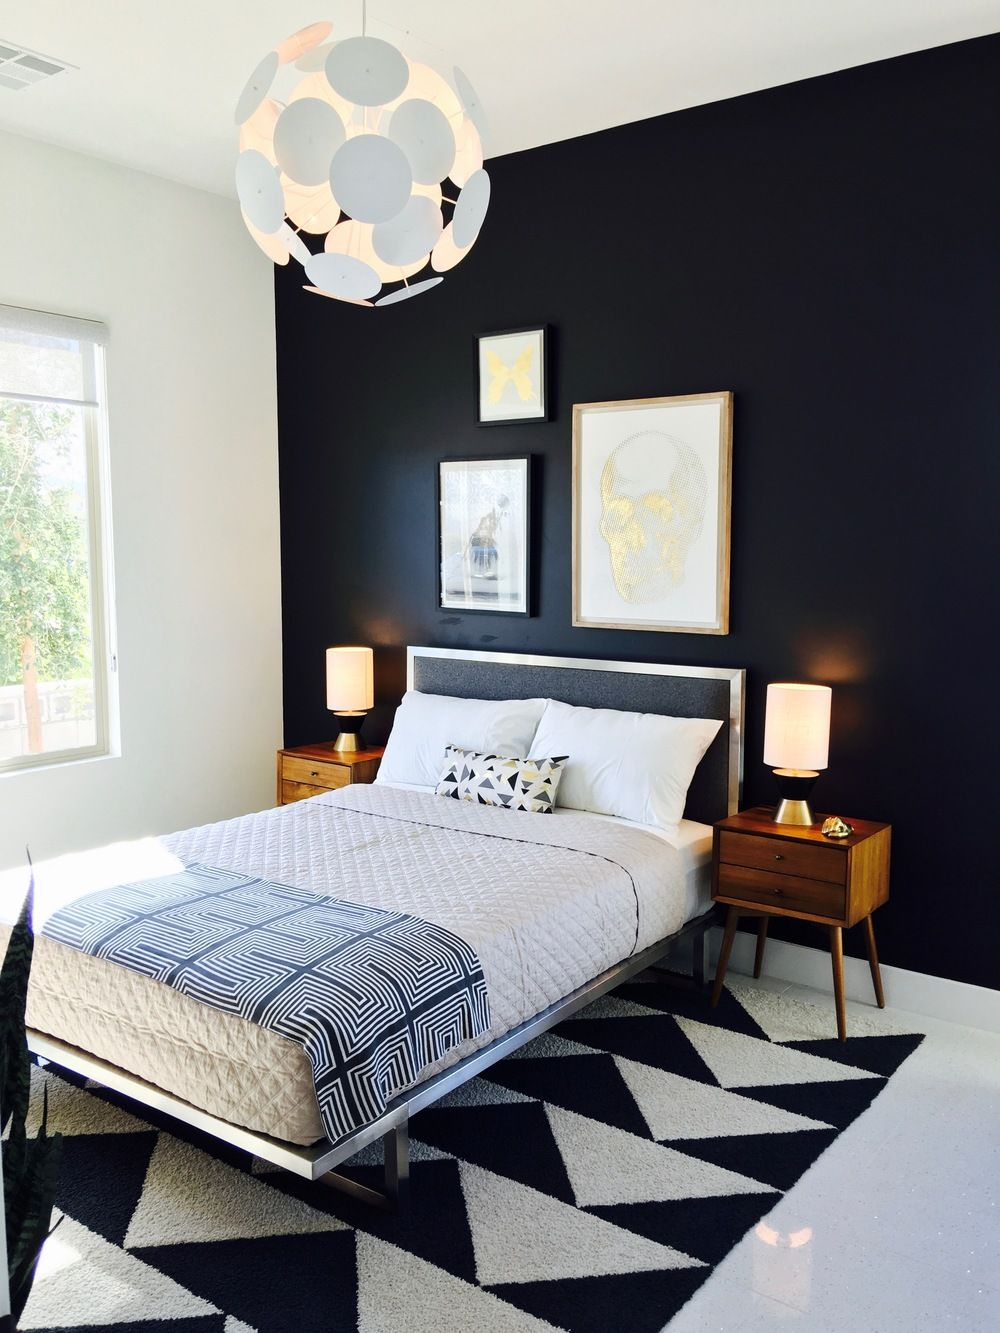 20 Beautiful Vintage Mid Century Modern Bedroom Design Ideas with 10 Clever Ideas How to Improve Midcentury Modern Bedroom